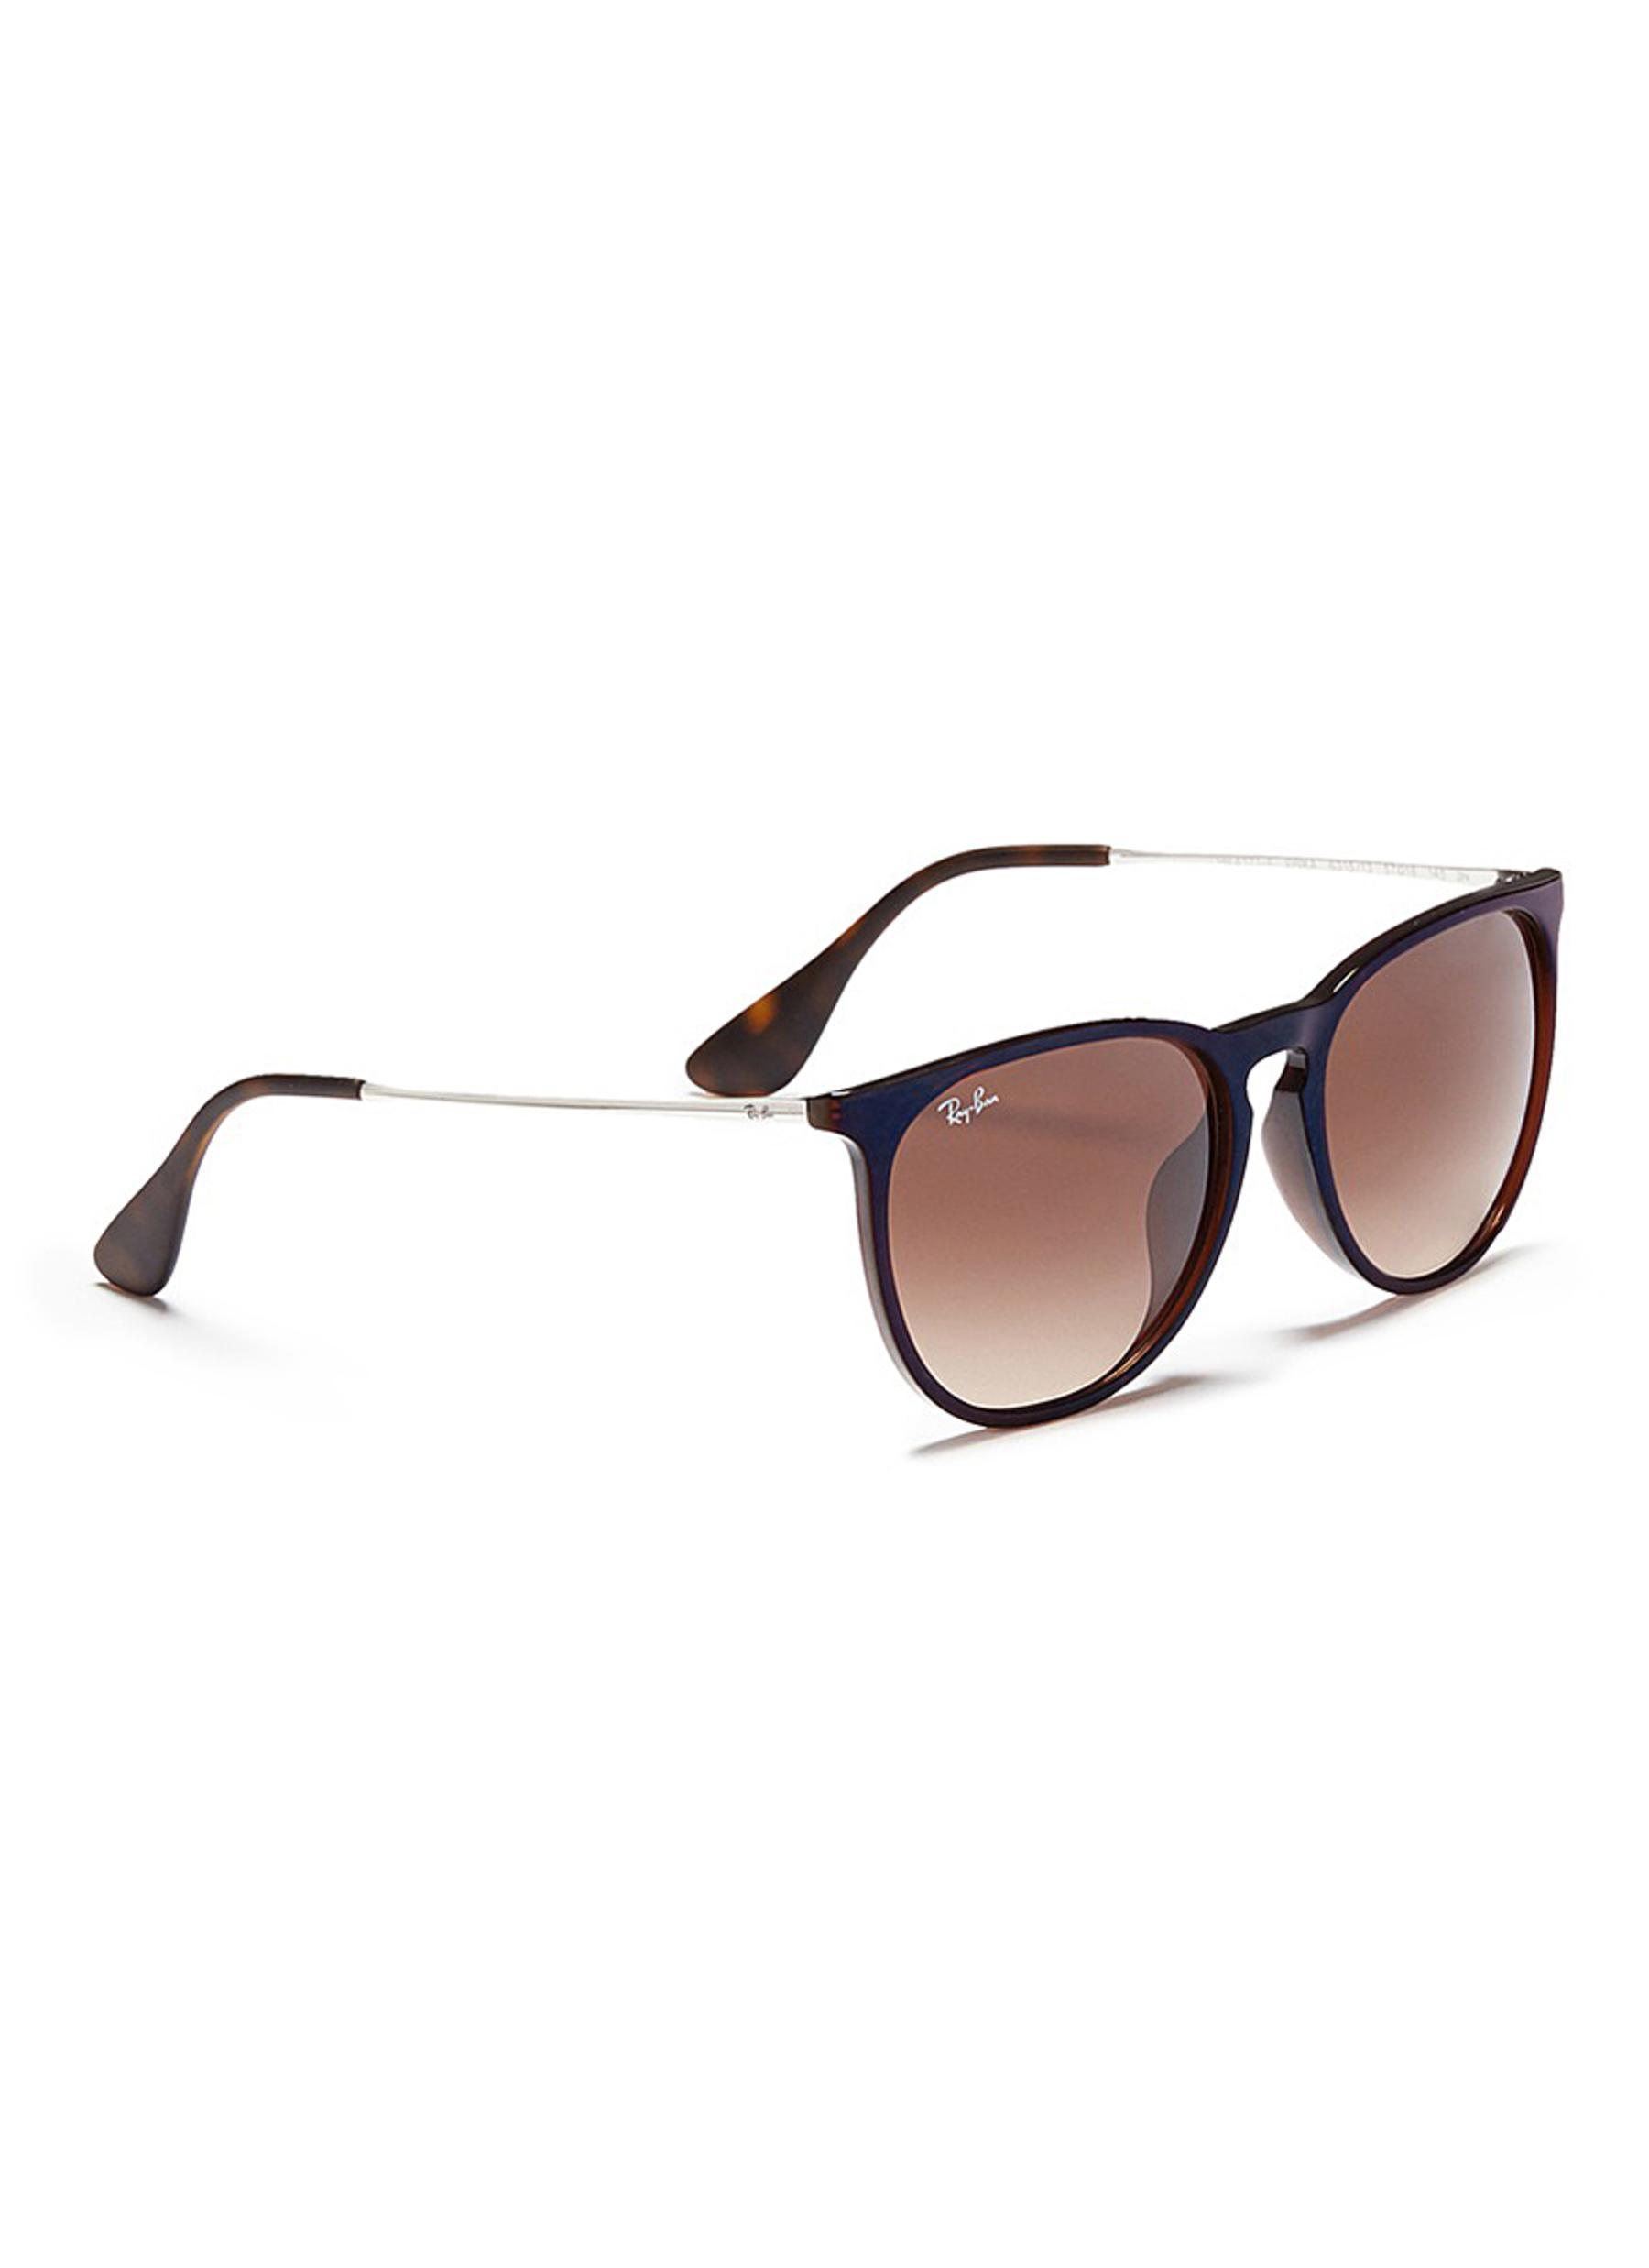 Ray-Ban Synthetic 'erika' Nylon Front Metal Temple Sunglasses in Brown